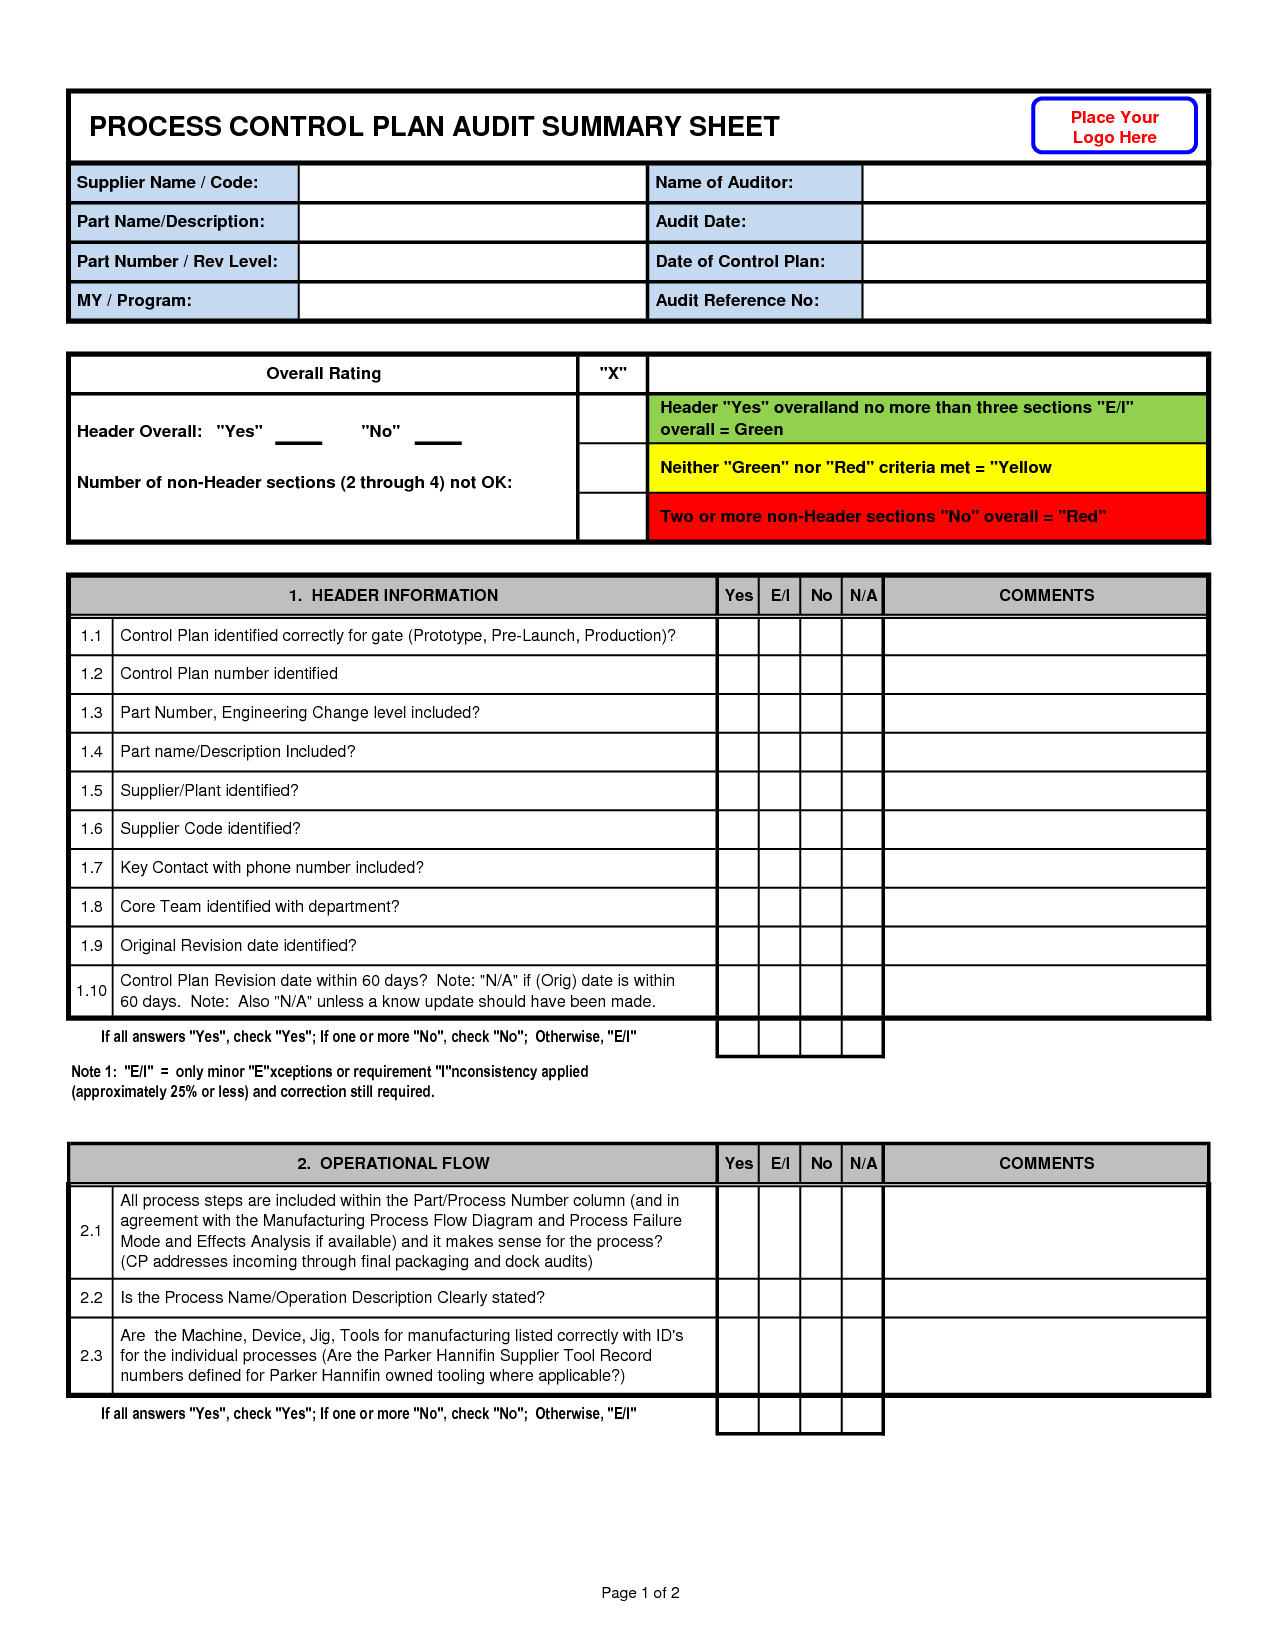 Awesome Process Control Plan Audit Summary Sheet Template With Logo Place And Rating Also Header Information